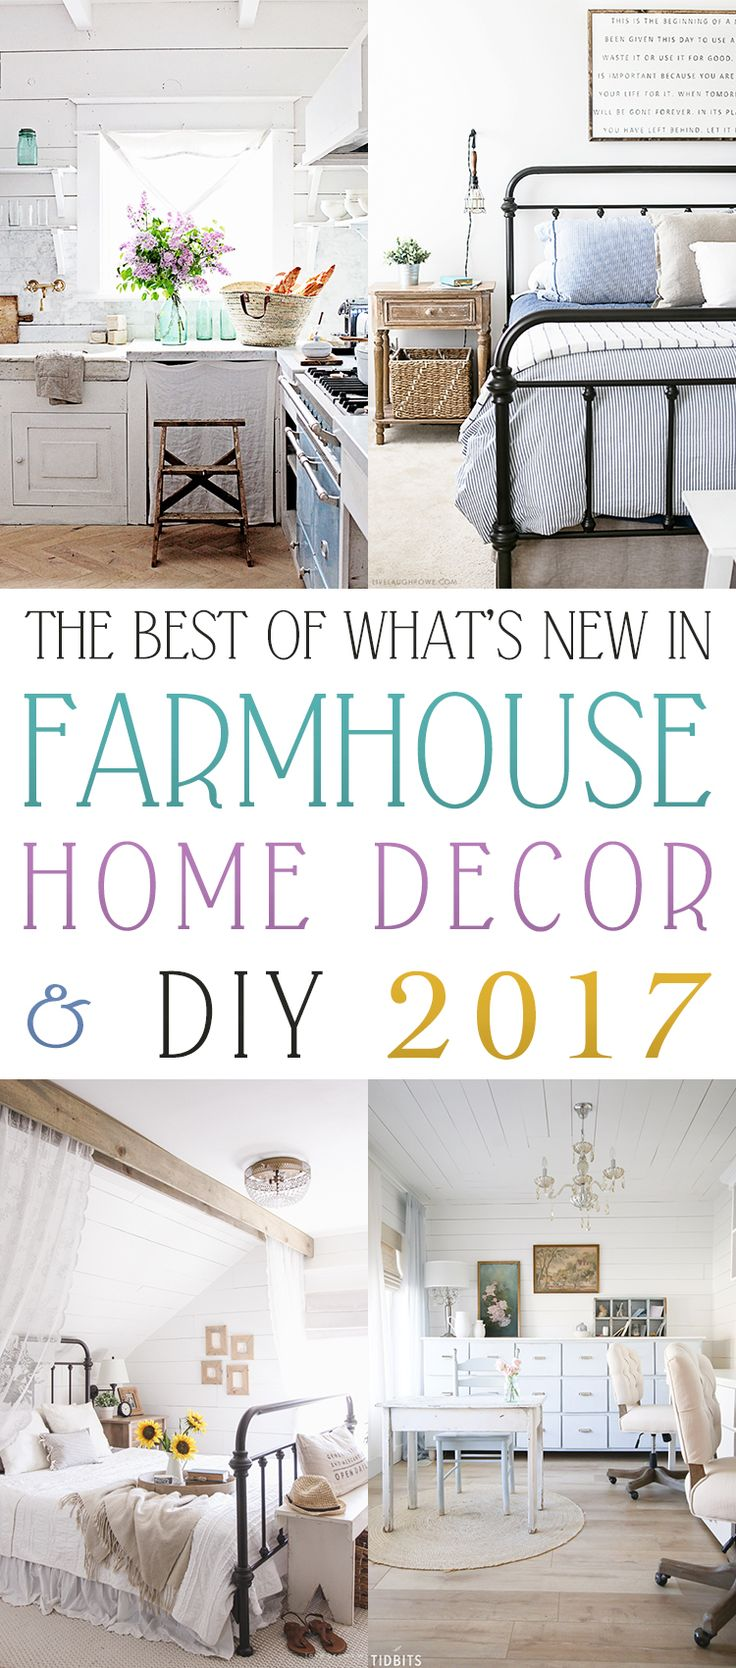 The Best of What's New in Farmhouse Home Decor & DIY 2017!